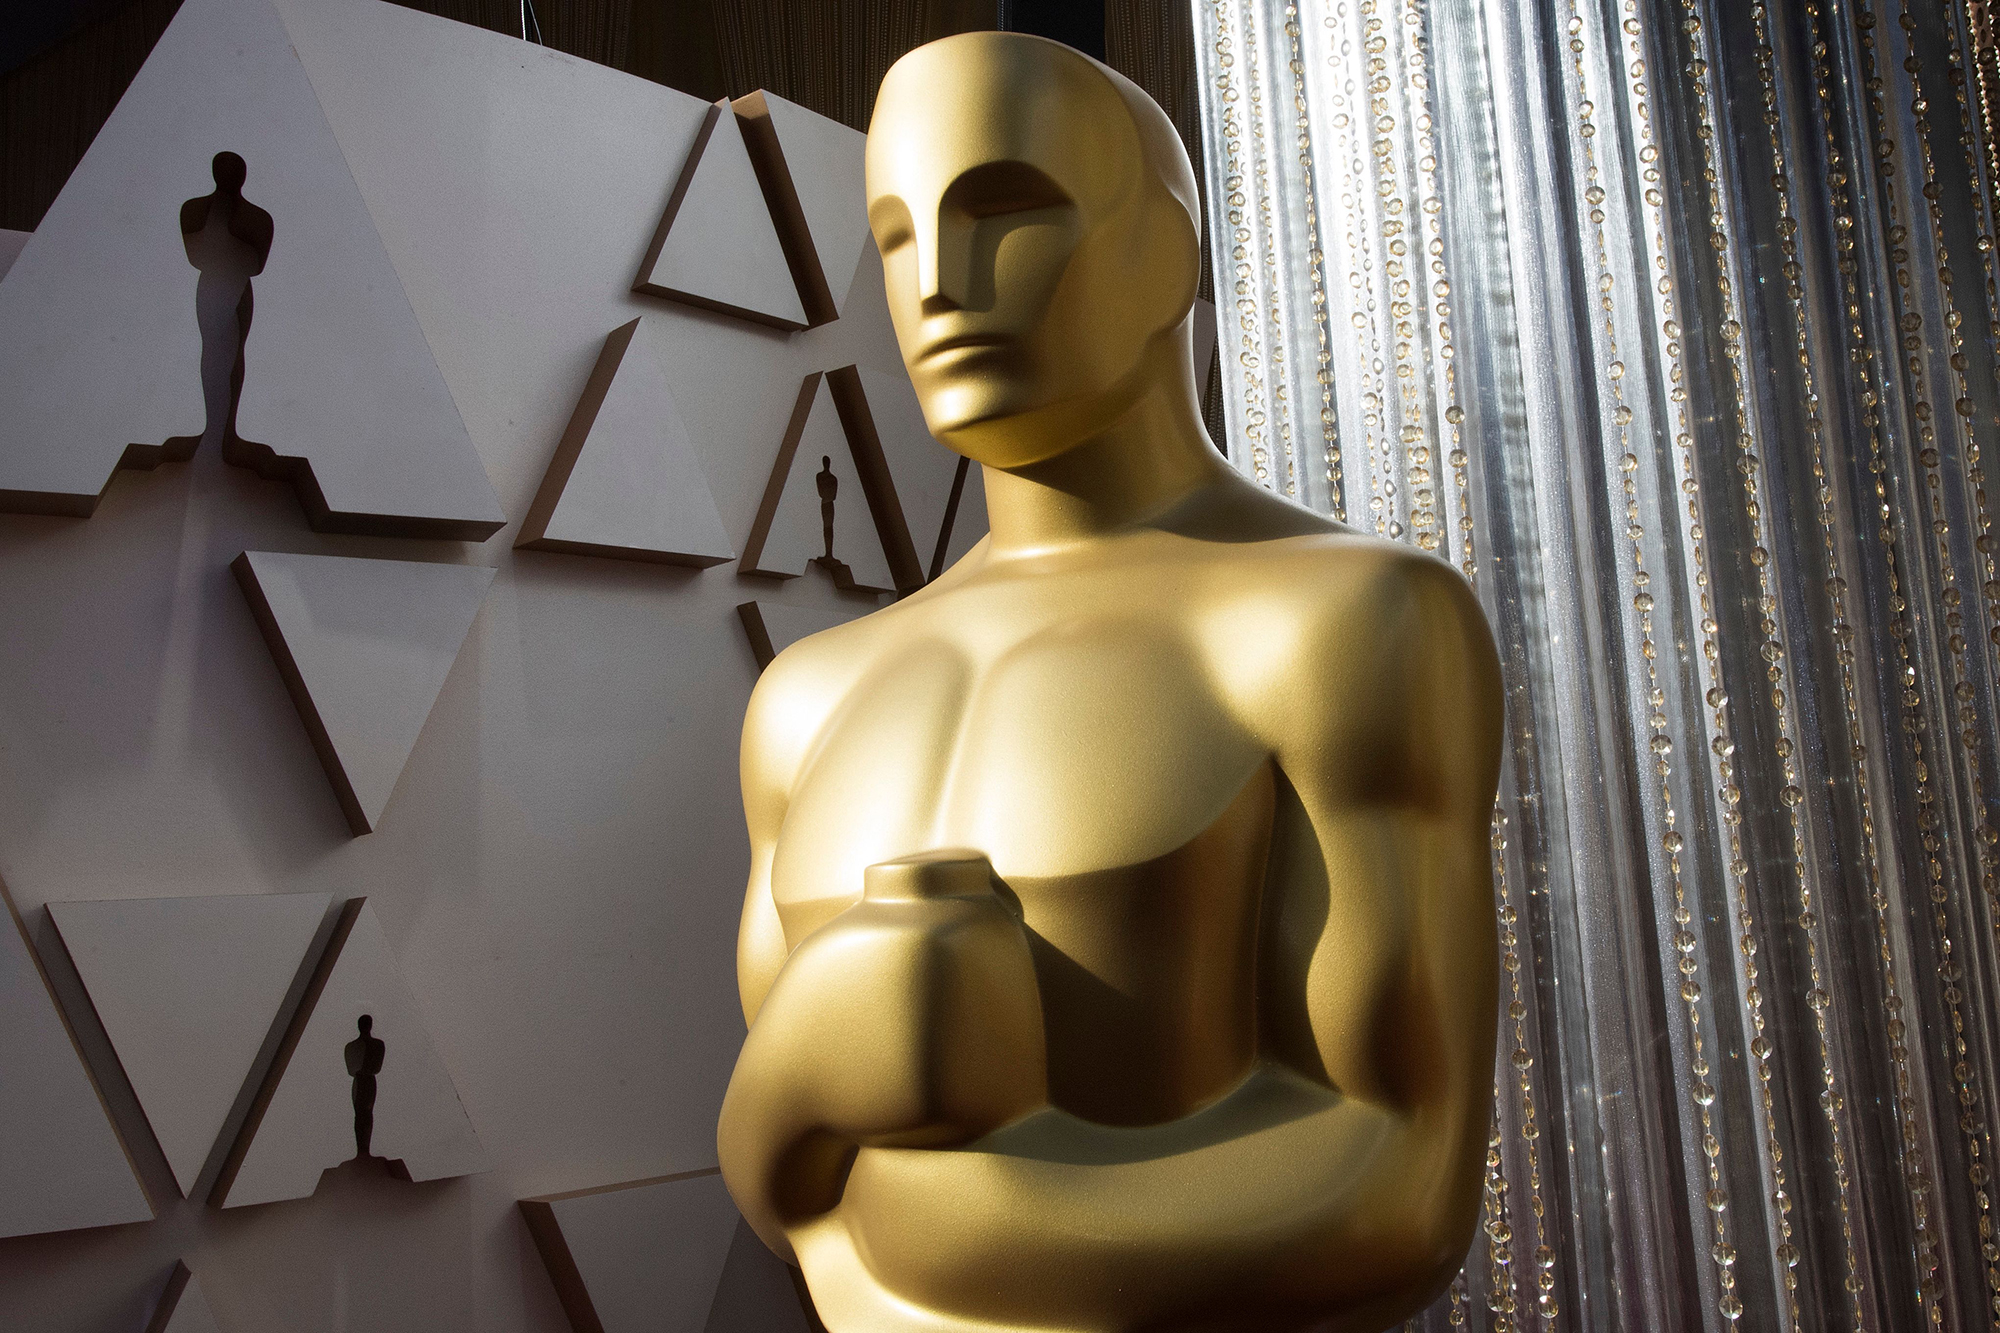 'In-person telecast will happen,' Academy says